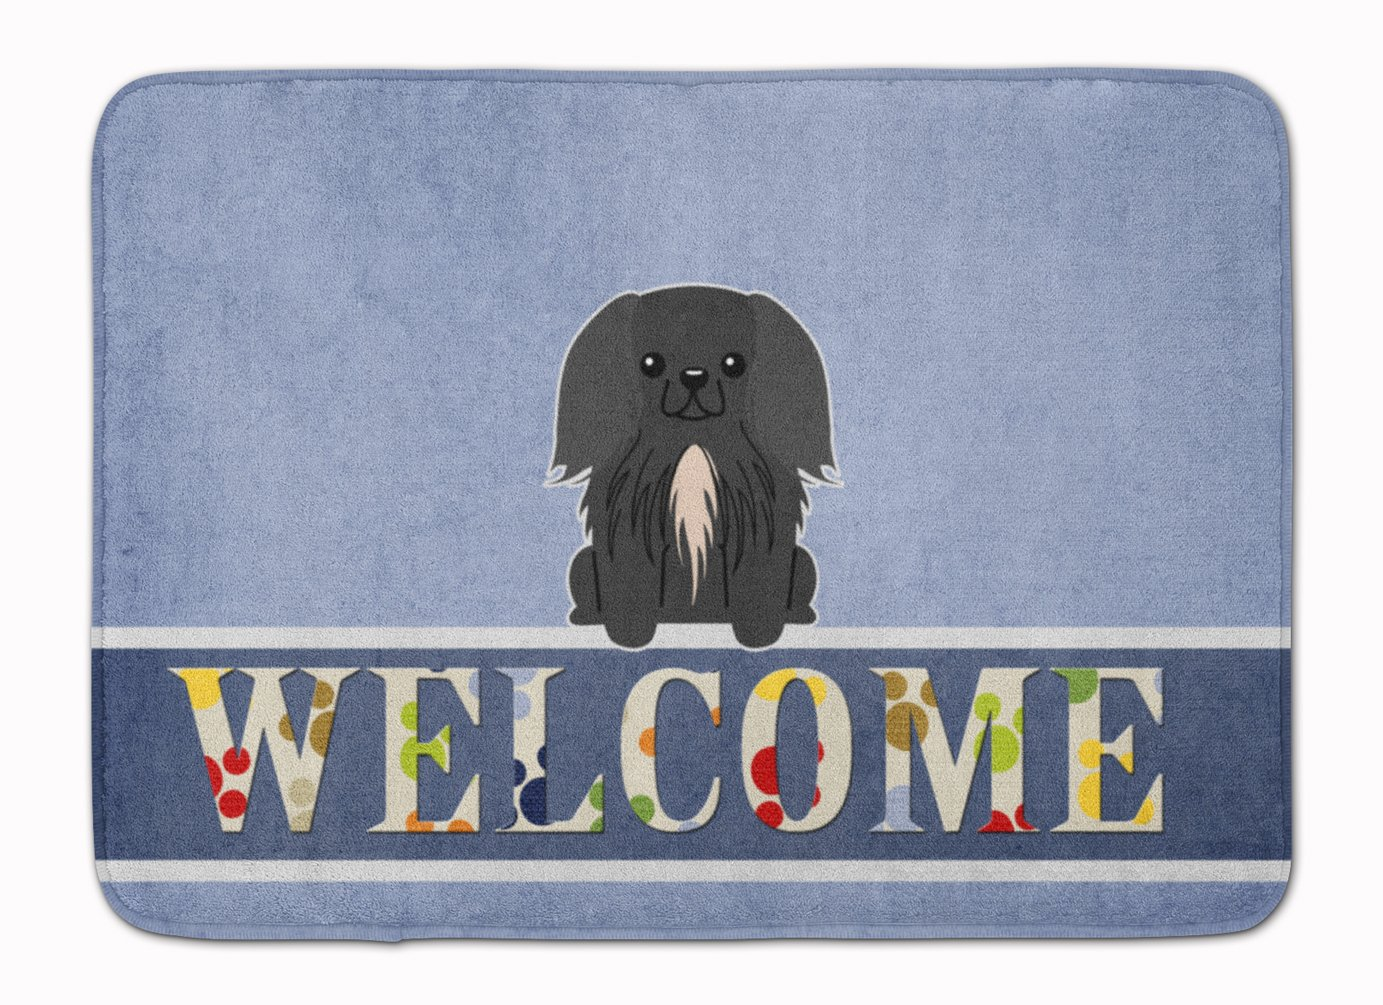 Carolines Treasures Pekingnese Black Welcome Floor Mat 19 x 27 Multicolor